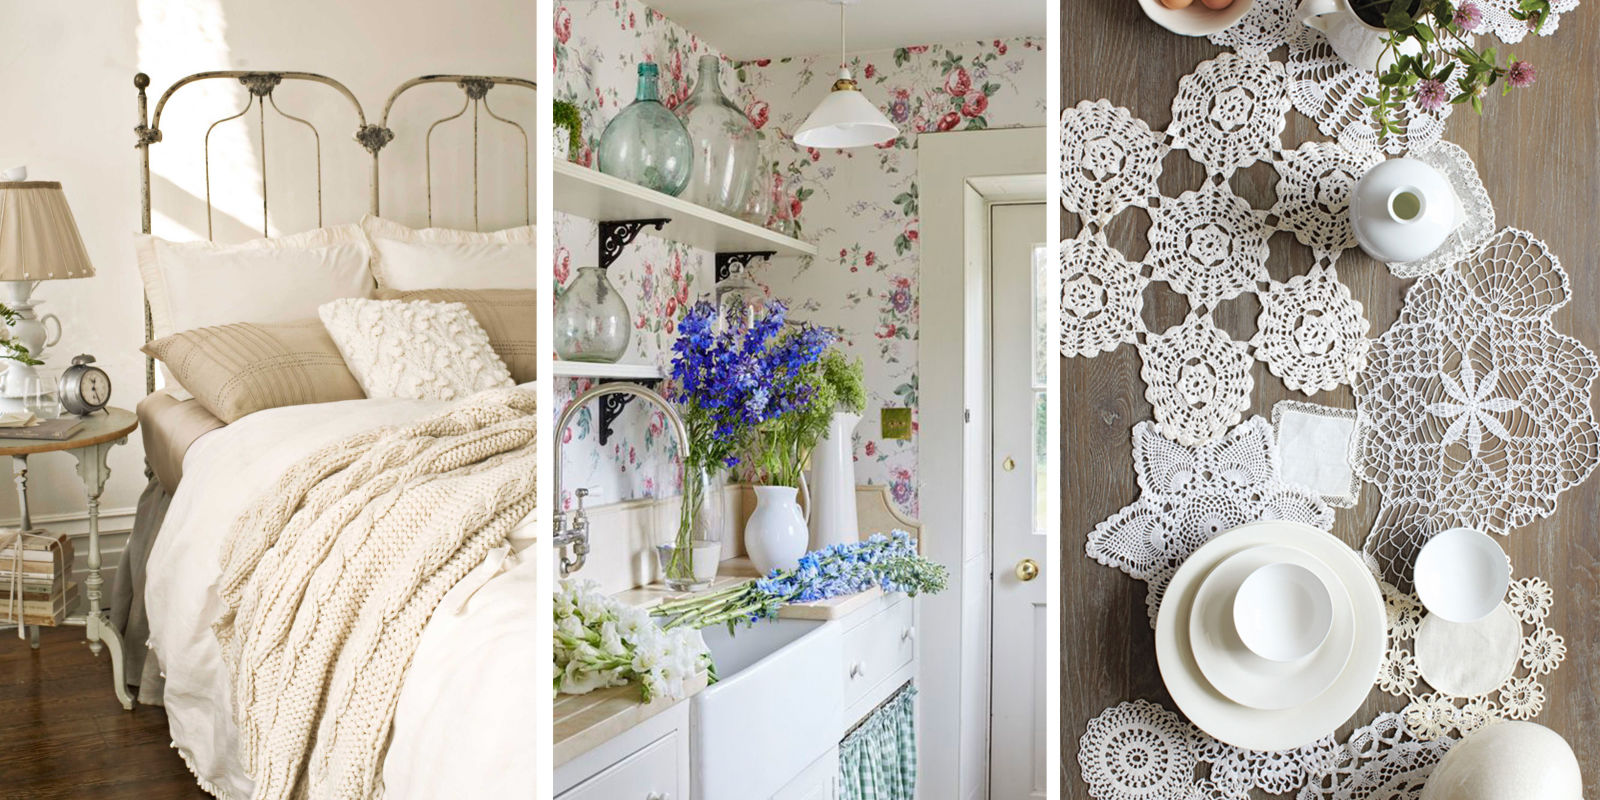 15 Vintage Décor Ideas